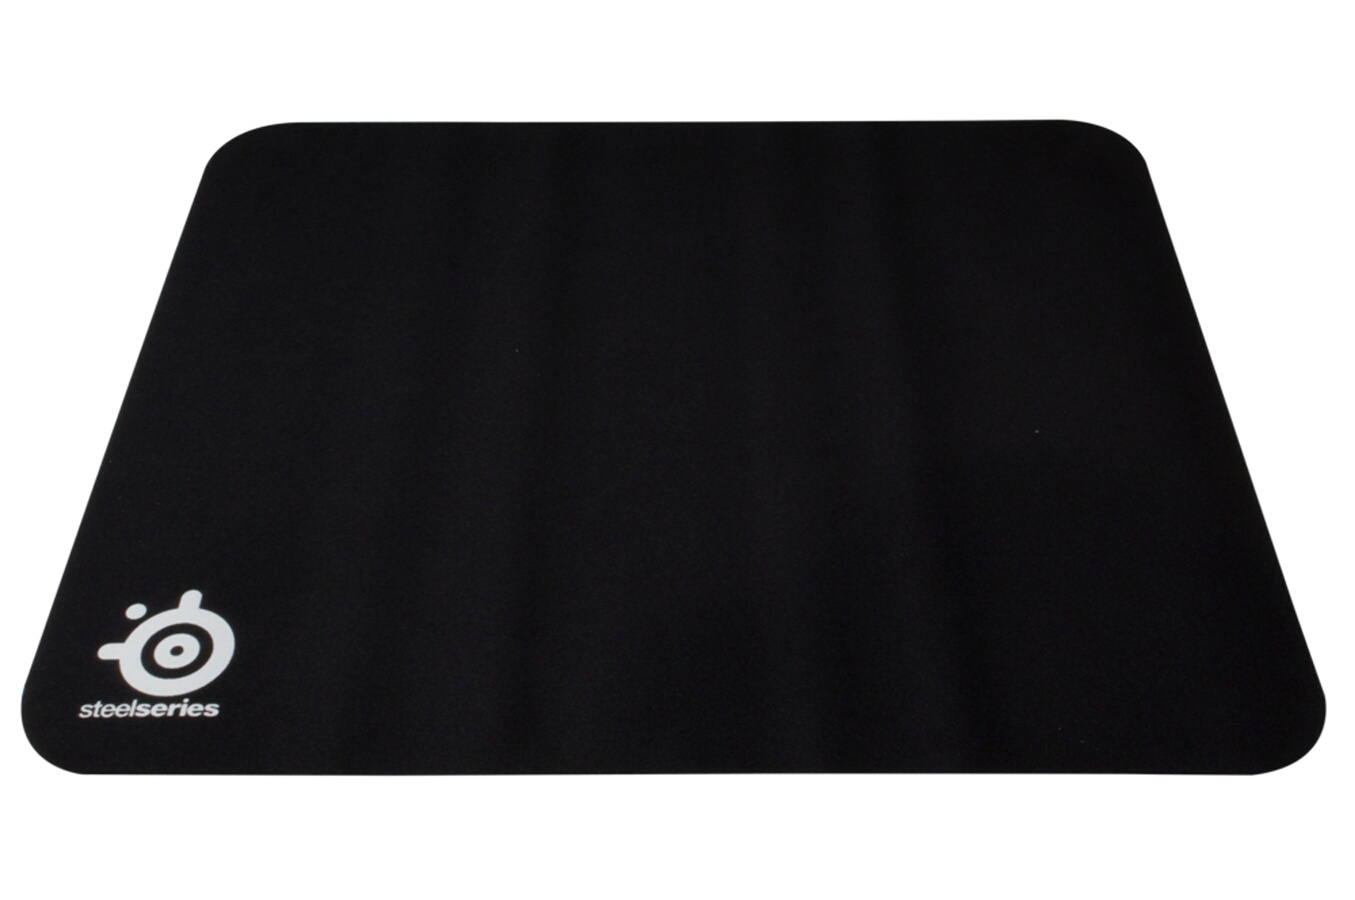 tapis de souris steelseries tapis steelseries qck steelseriesqck 1155261 darty. Black Bedroom Furniture Sets. Home Design Ideas